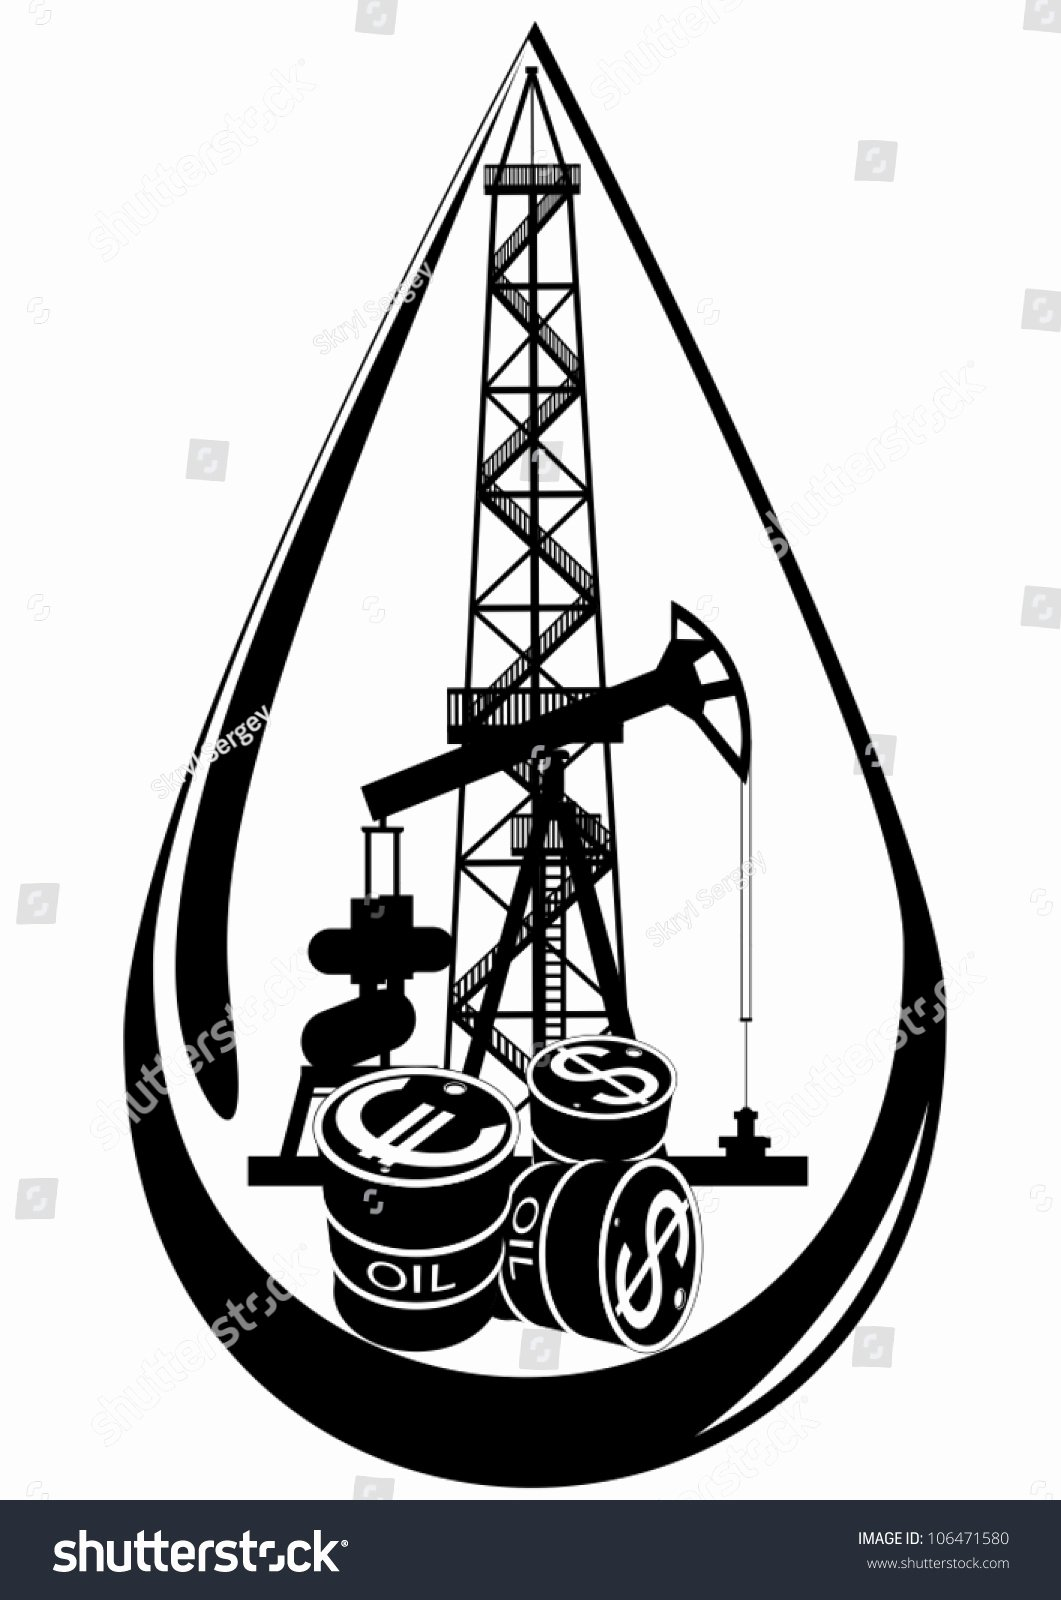 Black and White Illustration Awesome Oil Gas Industry Black White Illustration Stock Vector